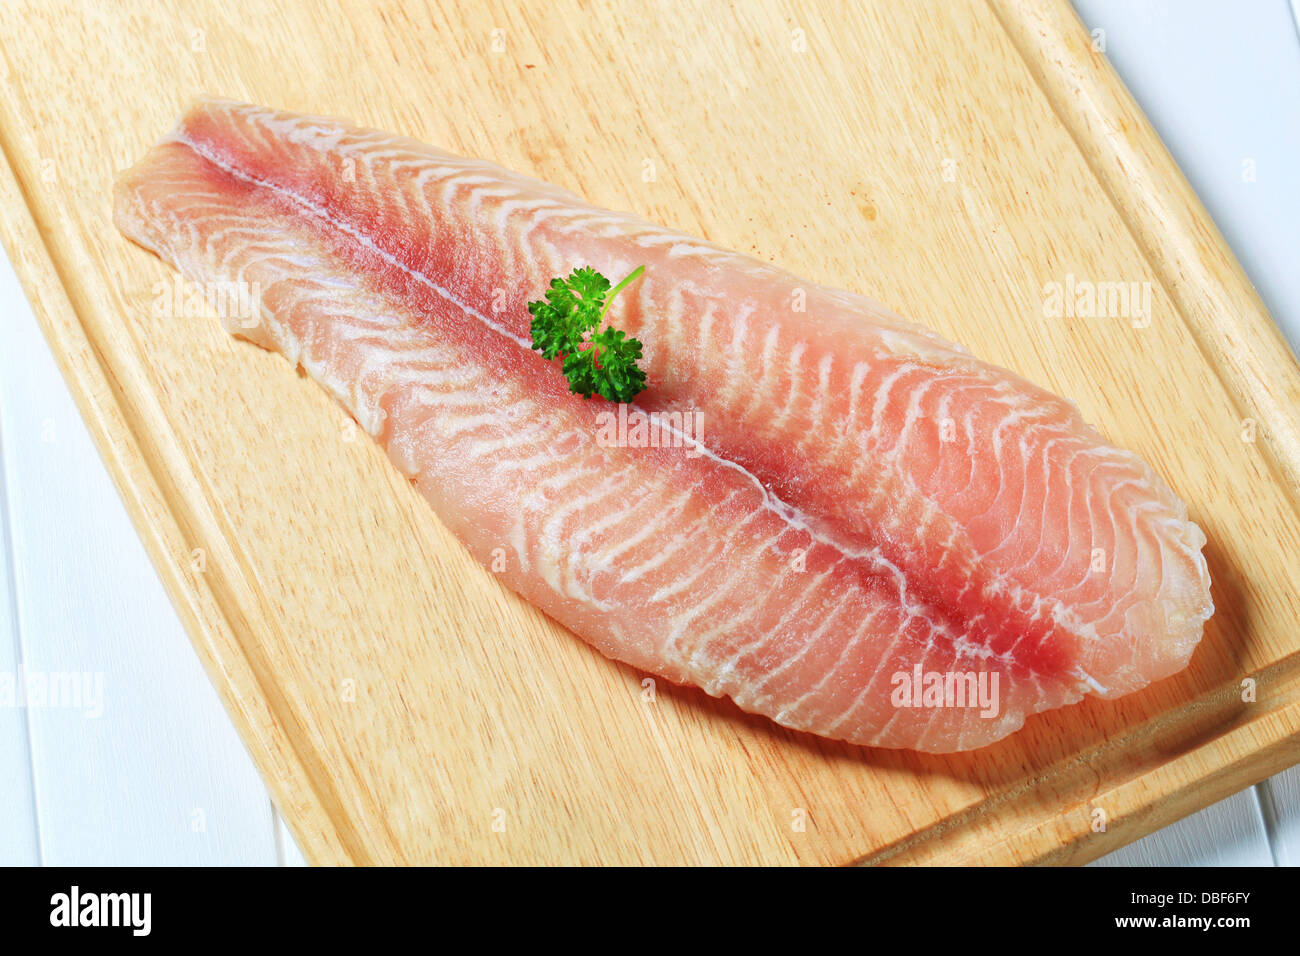 Frozen catfish fillet on cutting board - Stock Image